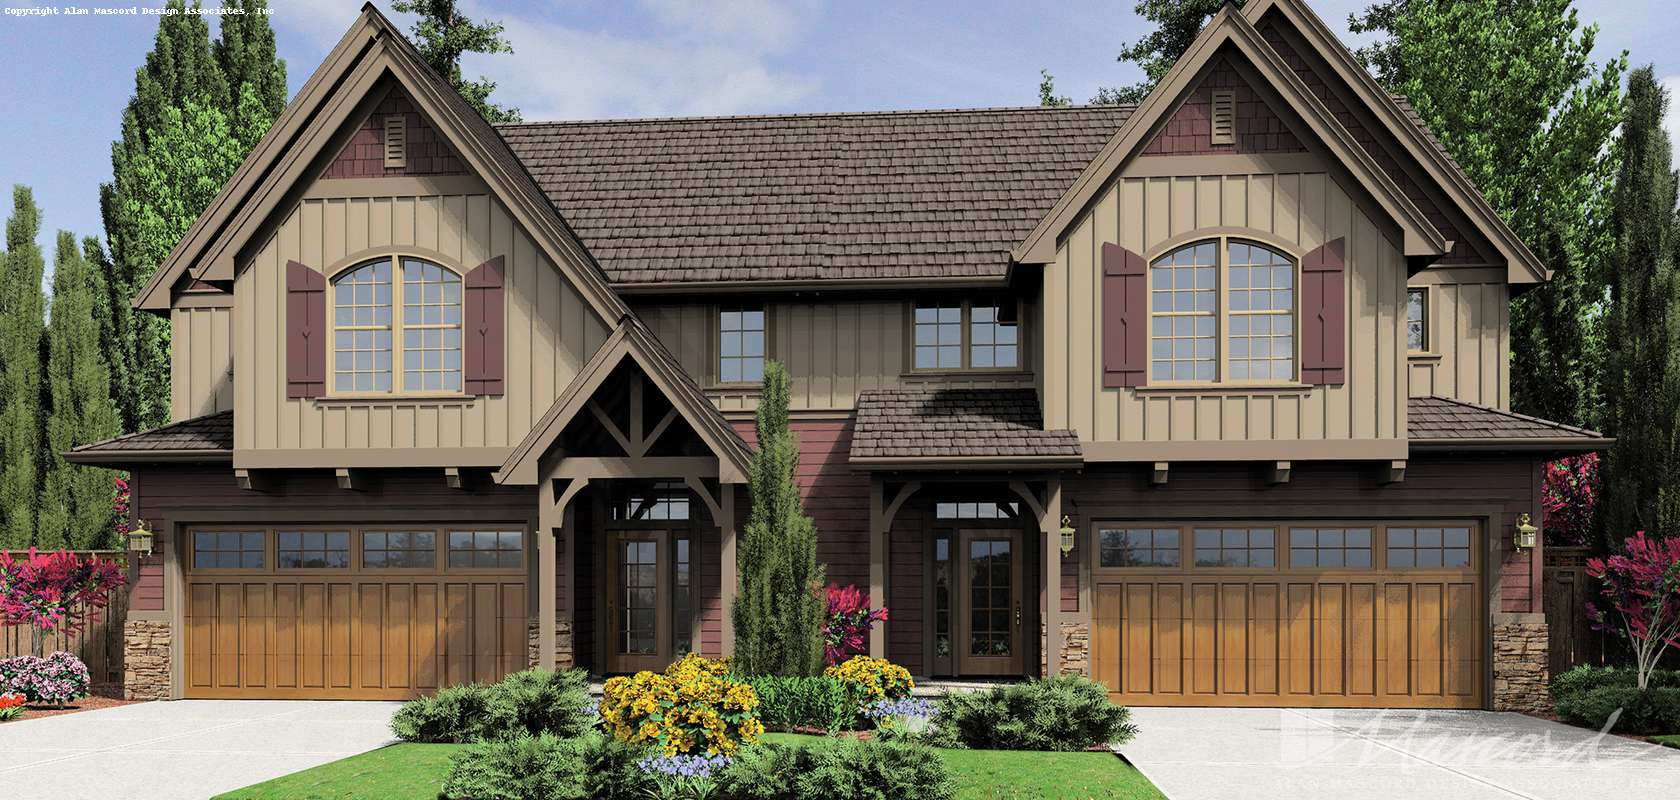 Mascord House Plan 4039: The Normandy